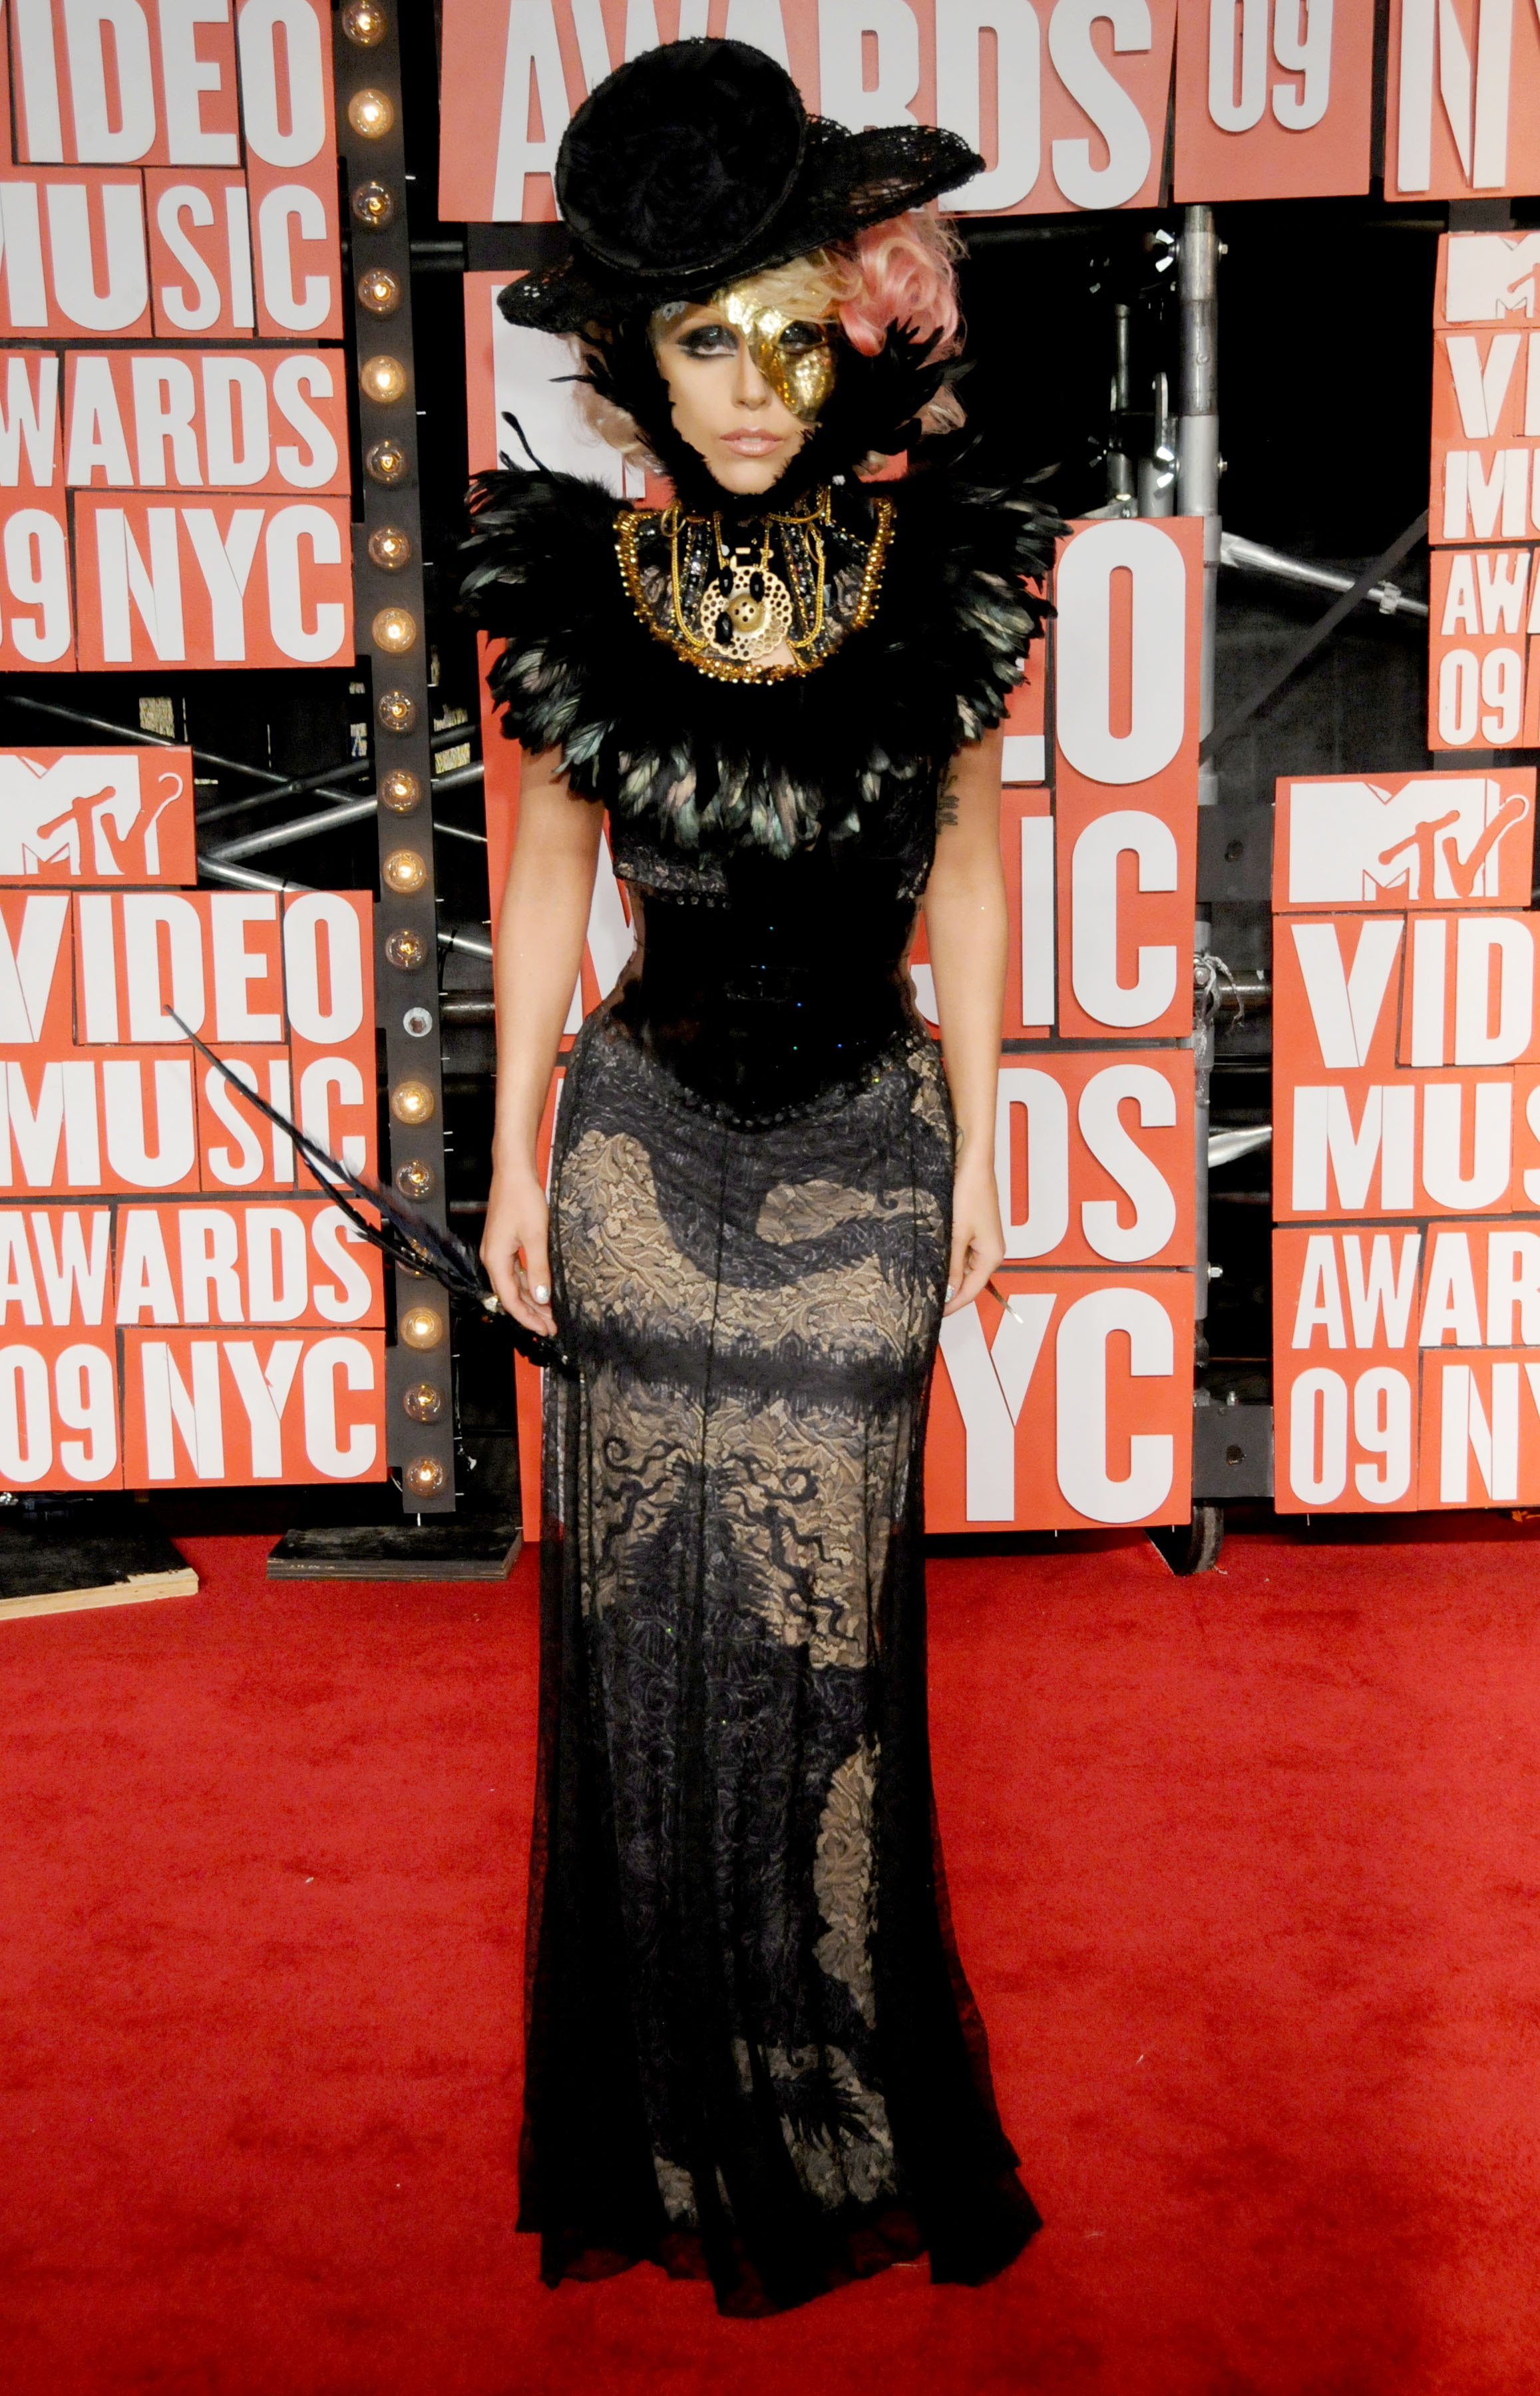 Lady Gaga arrives for the MTV Video Music Awards at Radio City Music Hall in New York City on Sept. 13, 2009.